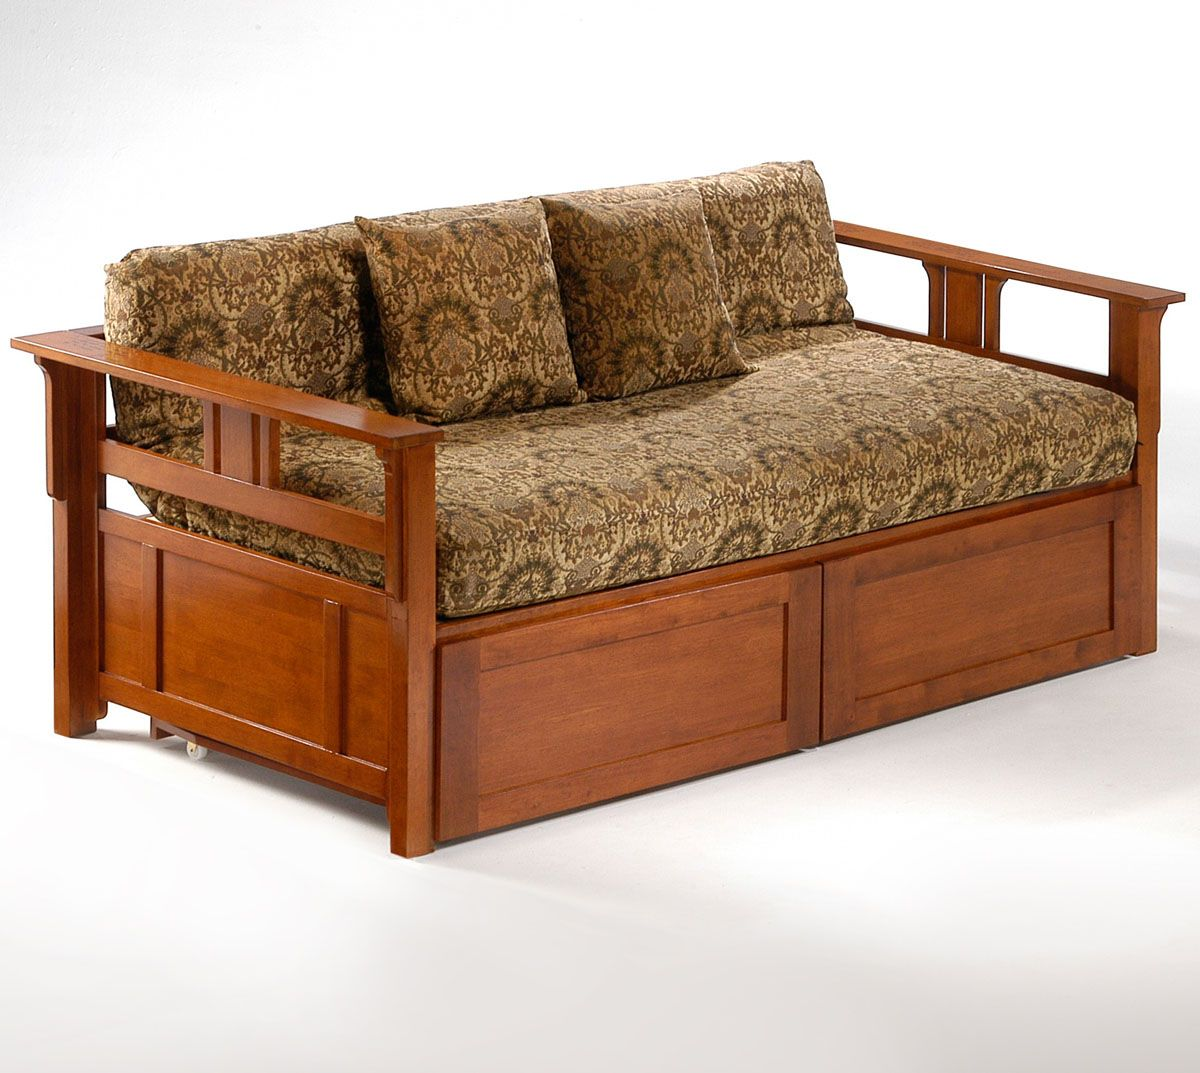 Daybed Teddy Roosevelt Daybed 809 00 Night Day Furniture Daybeds Day Bed Pinterest